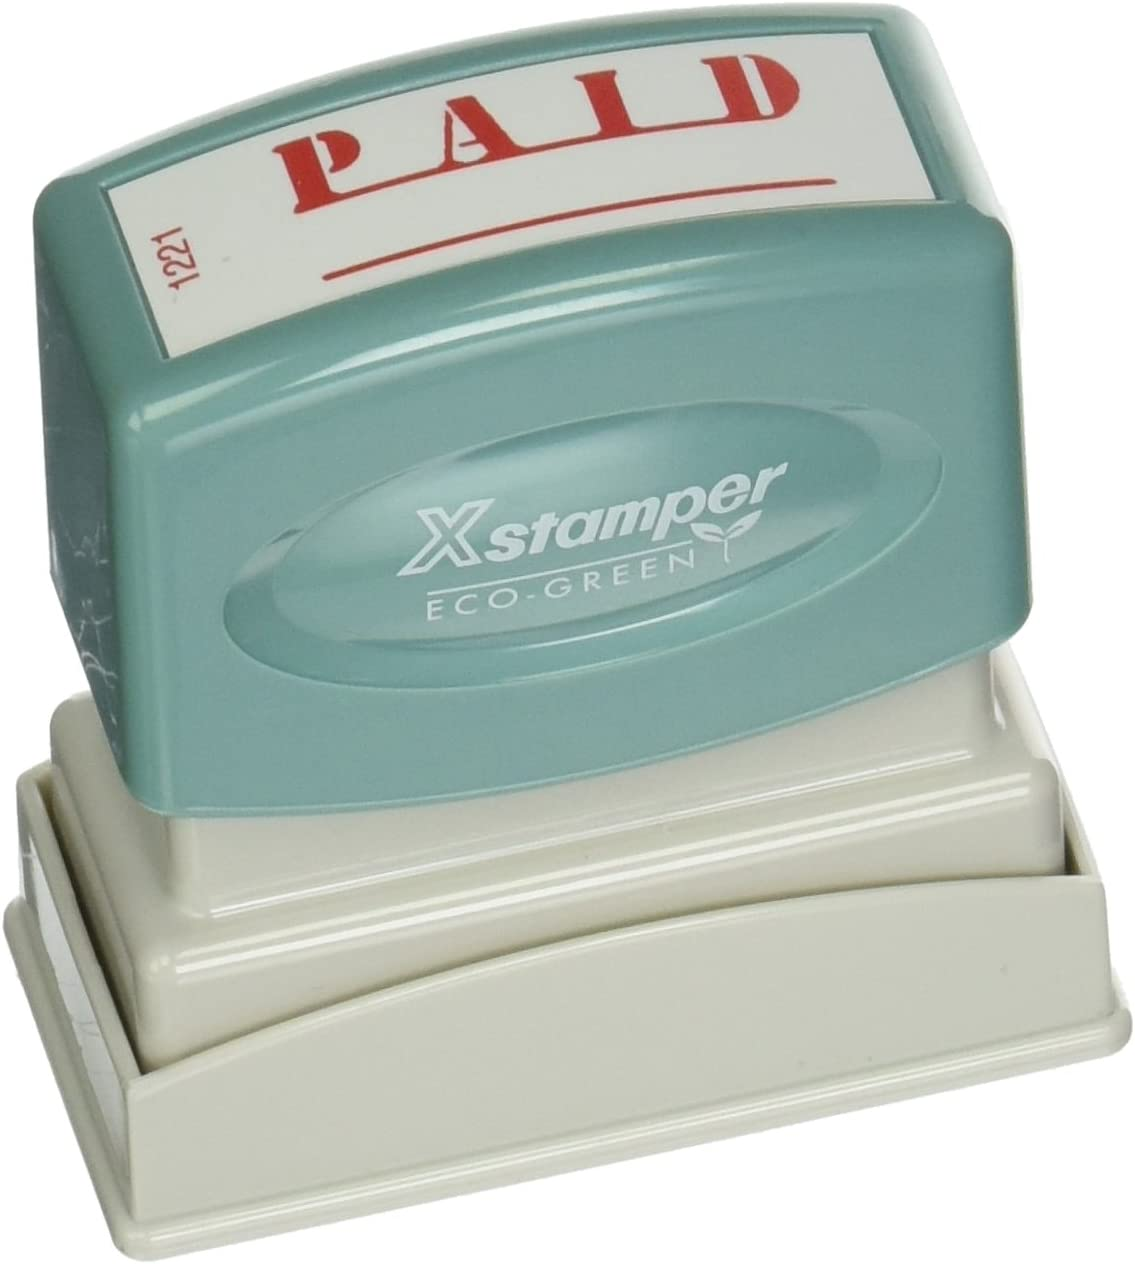 "Xstamper(R) One-Color Title Stamp, Pre-Inked, ""Paid"", Eco Greeen, Box 1 (XST1221)"